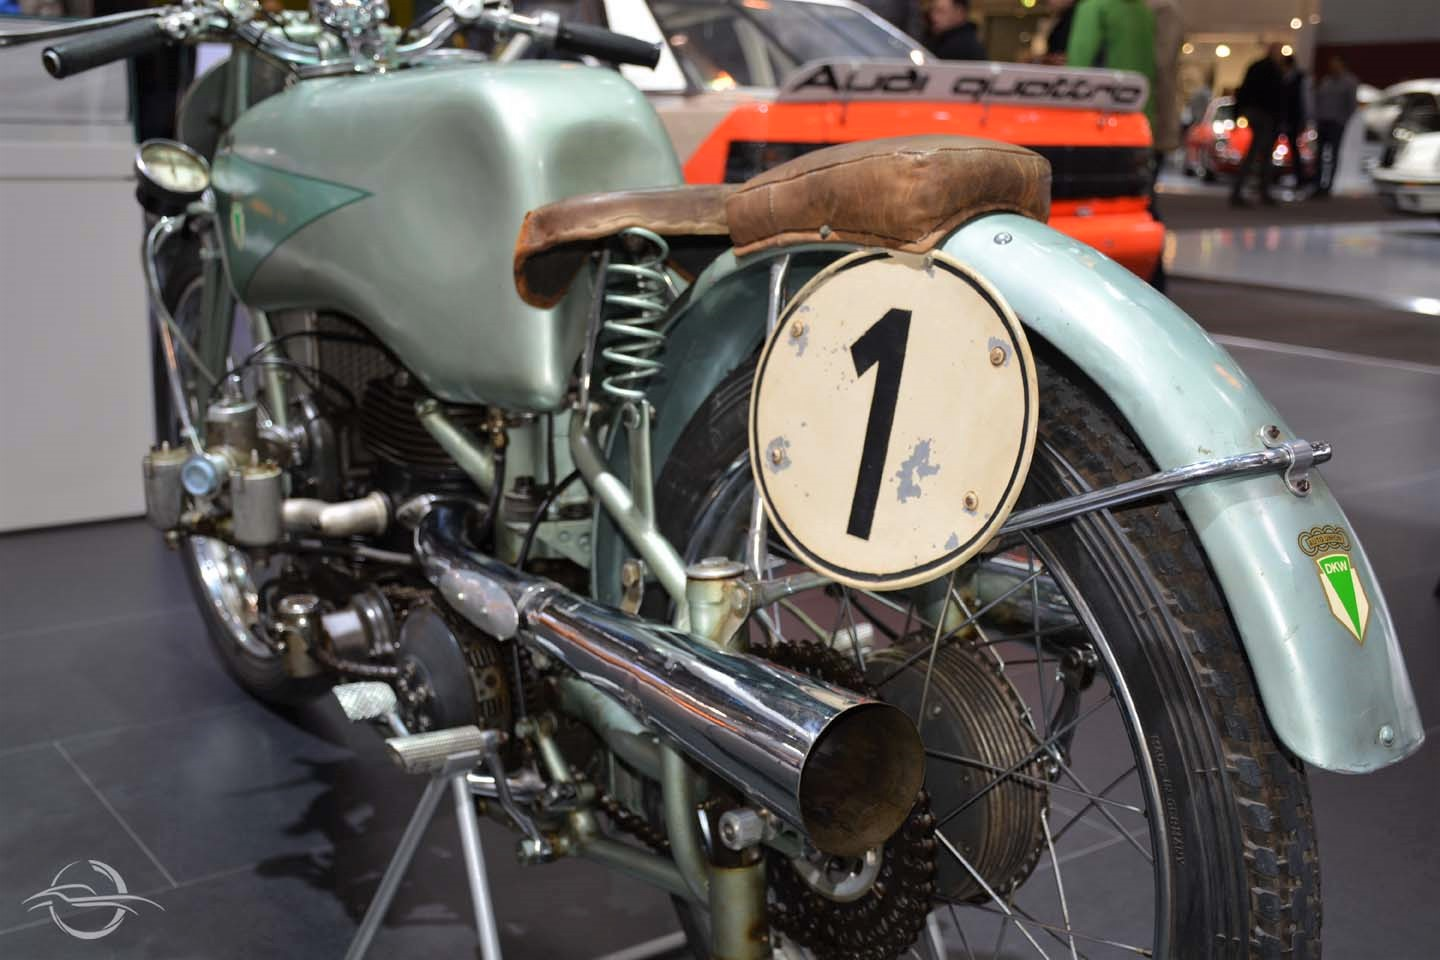 photo of the rear of motorcycle DKW 500 ULD, AUTO UNION 2